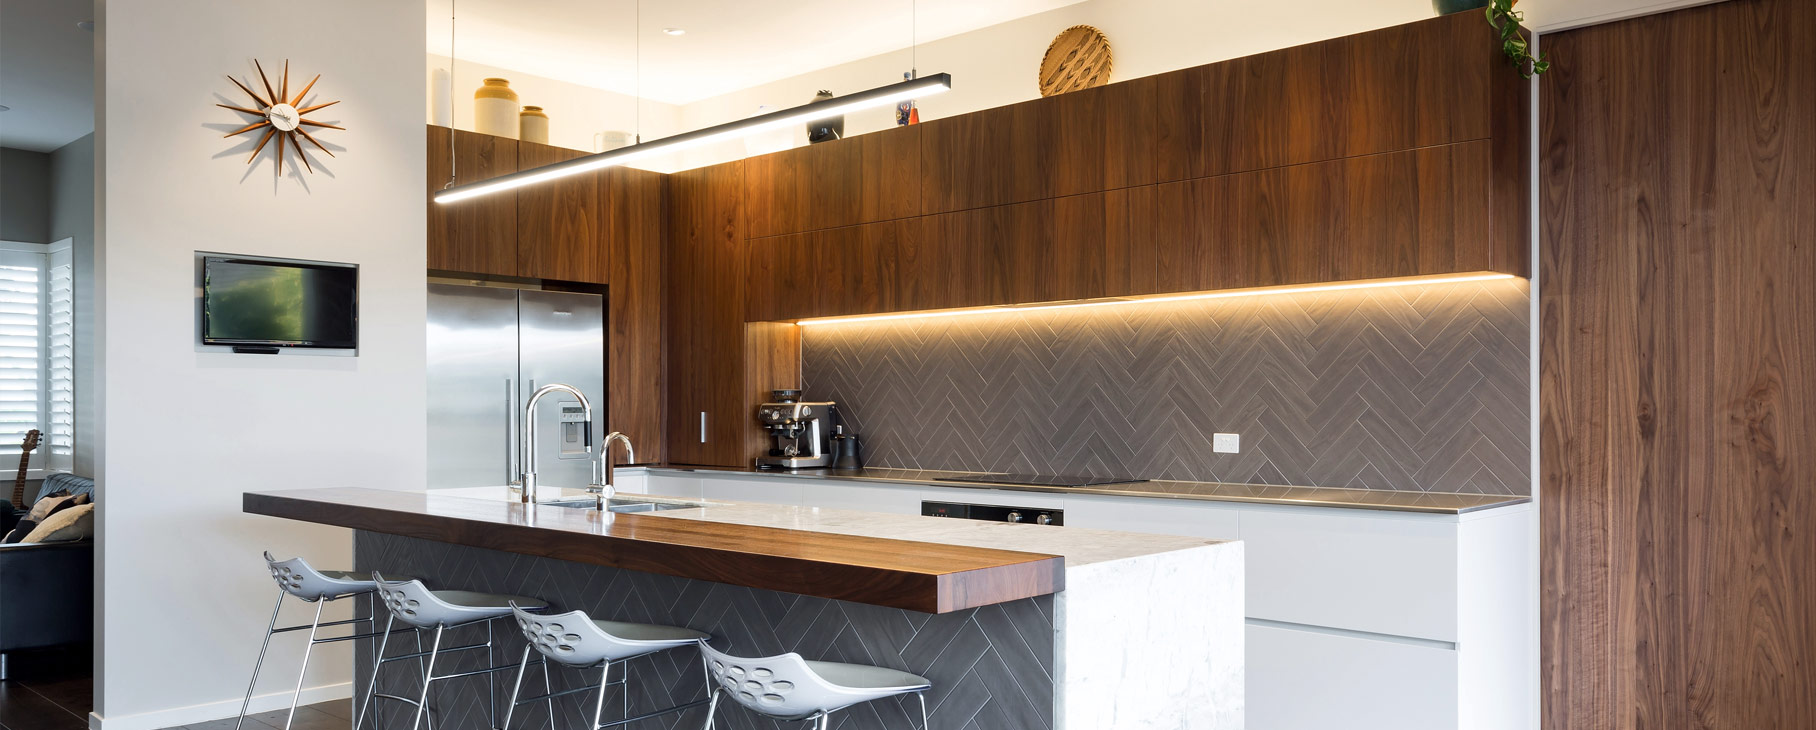 modern kitchen design herringbone tiles